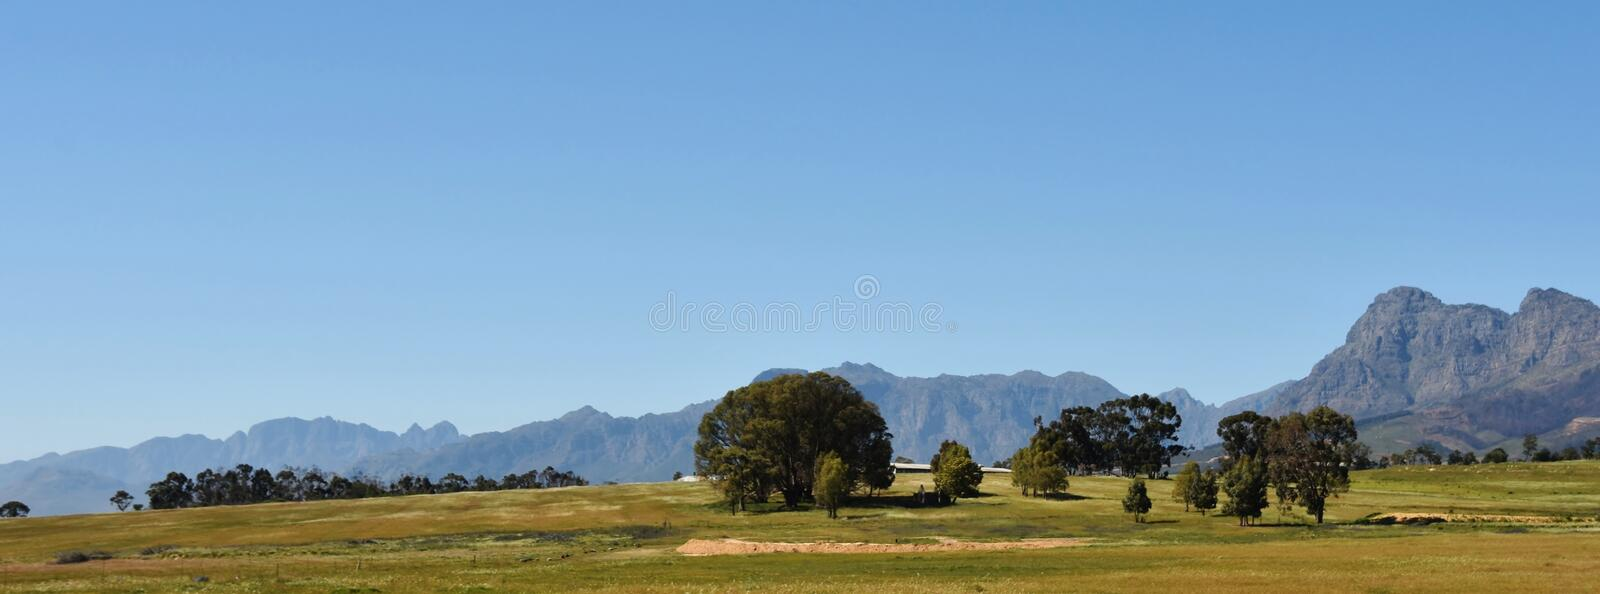 Hottentots Holland Mountains. Landscape with the Hottentots Holland Mountains and trees on a meadow stock images